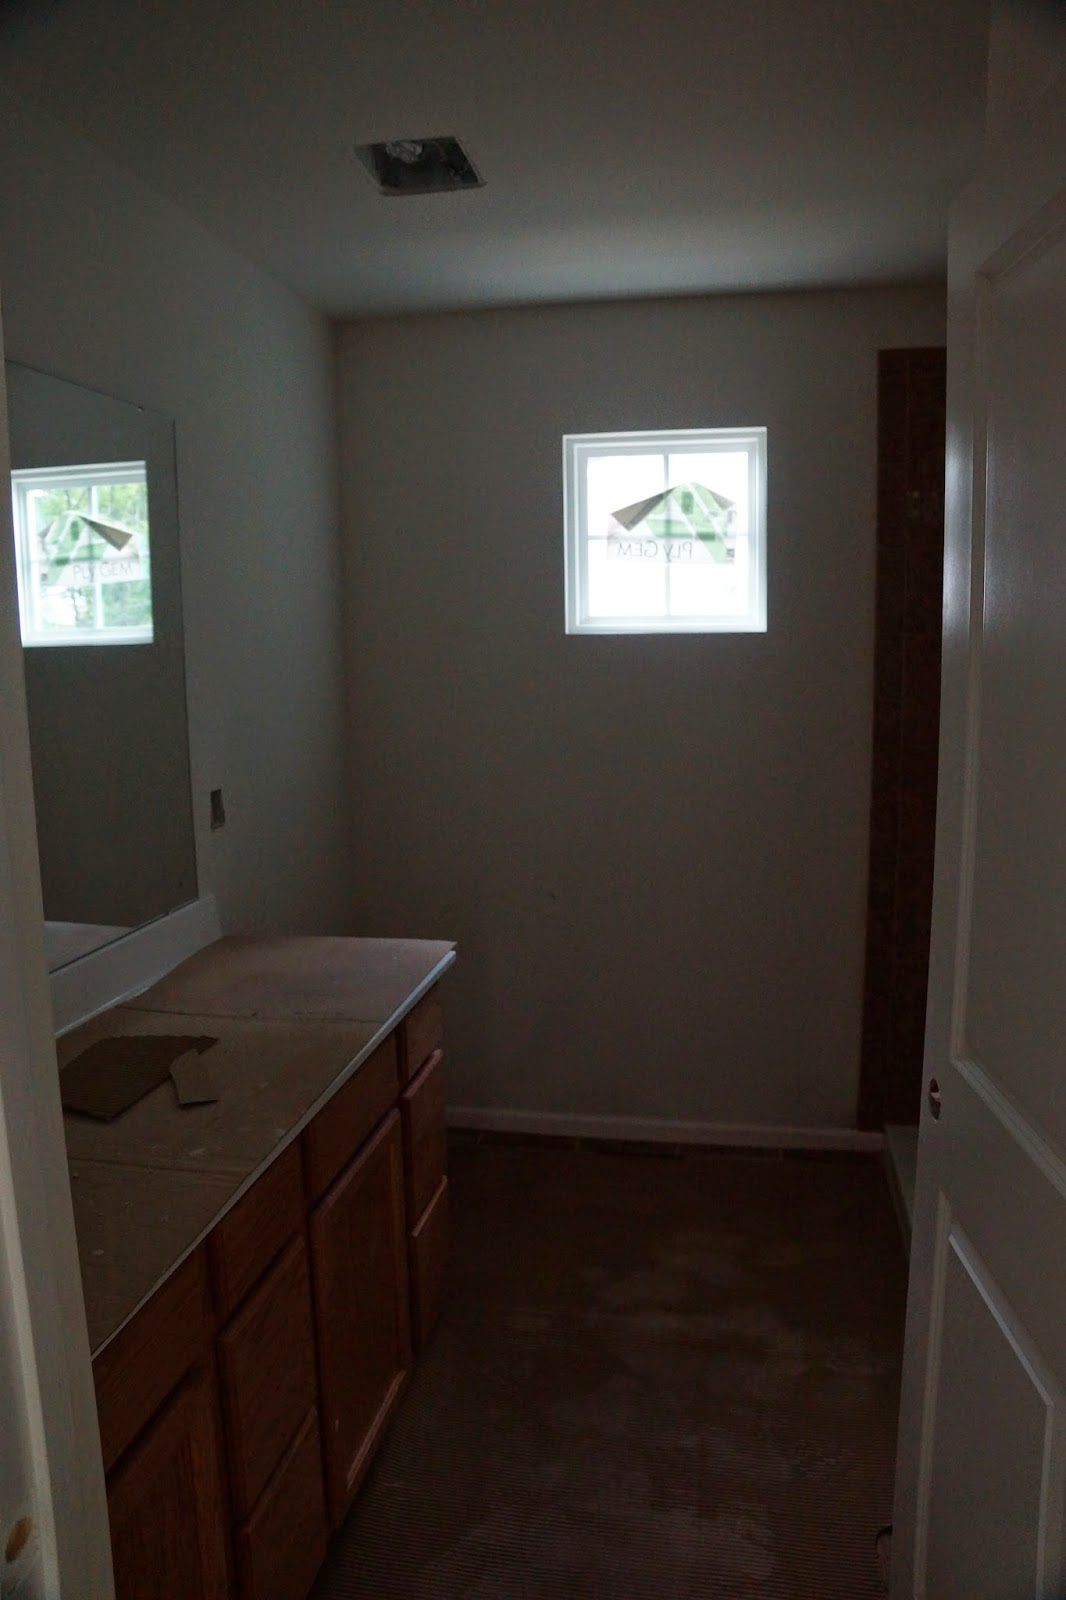 Picture of double cabinets in master bathroom